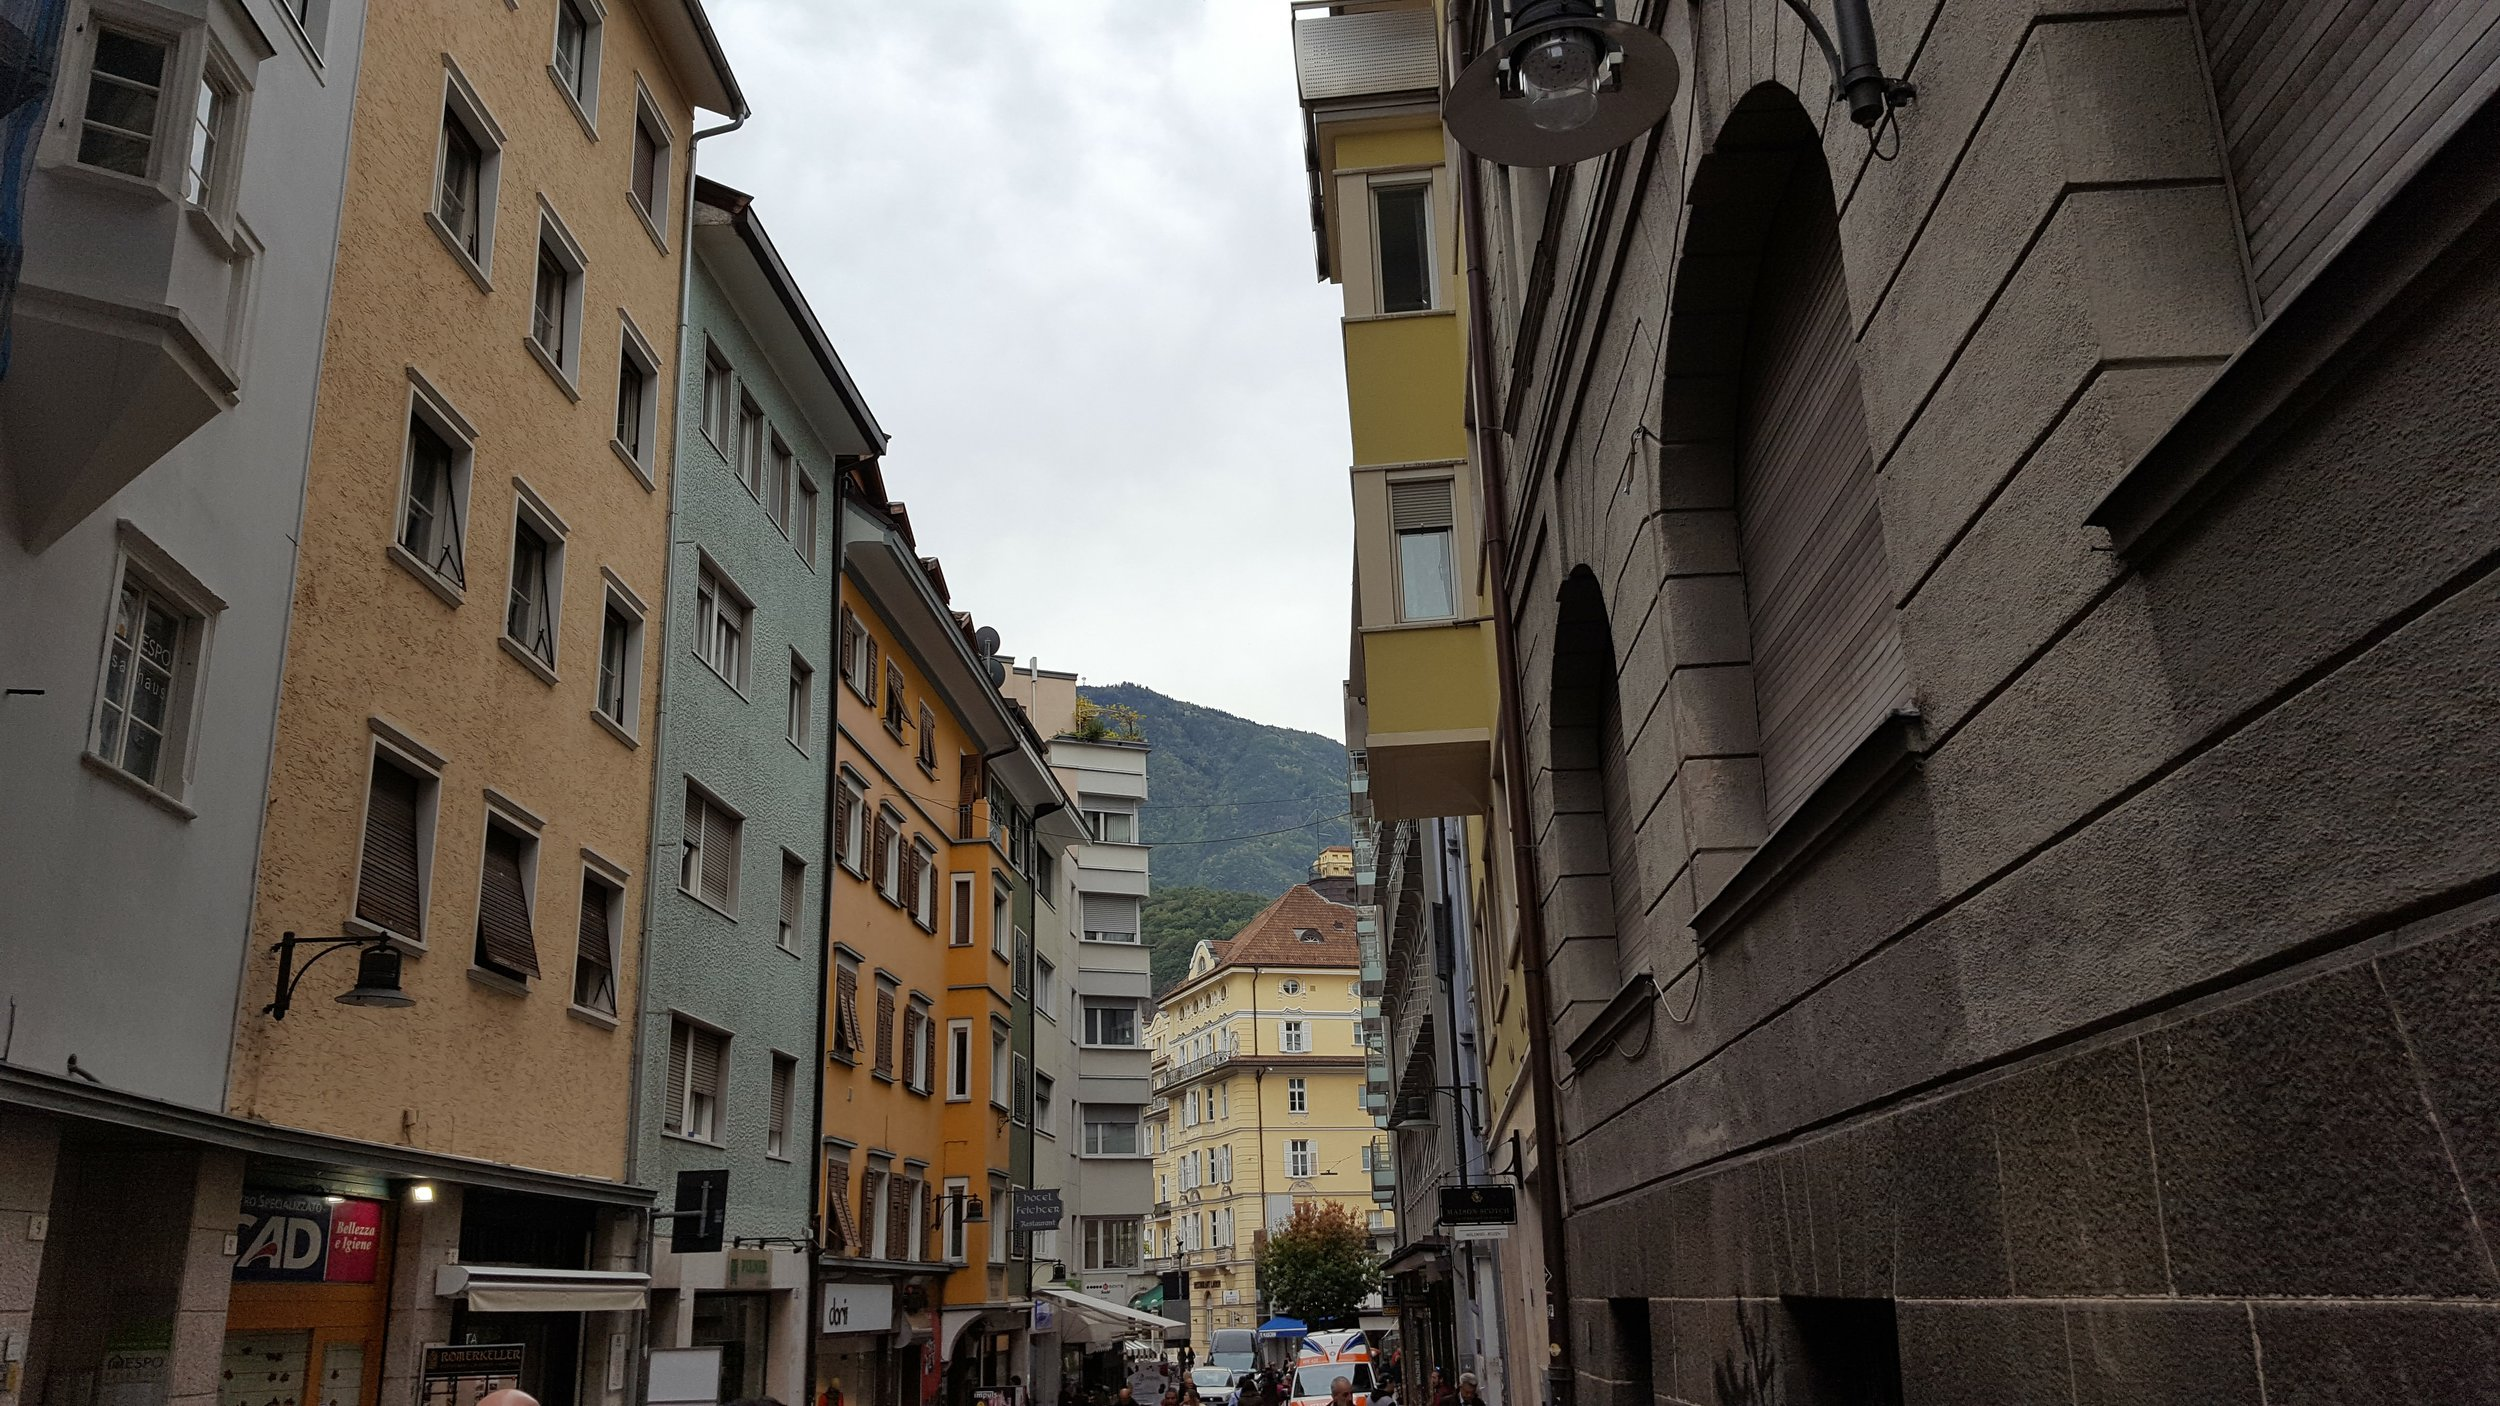 The streets of Bolzano